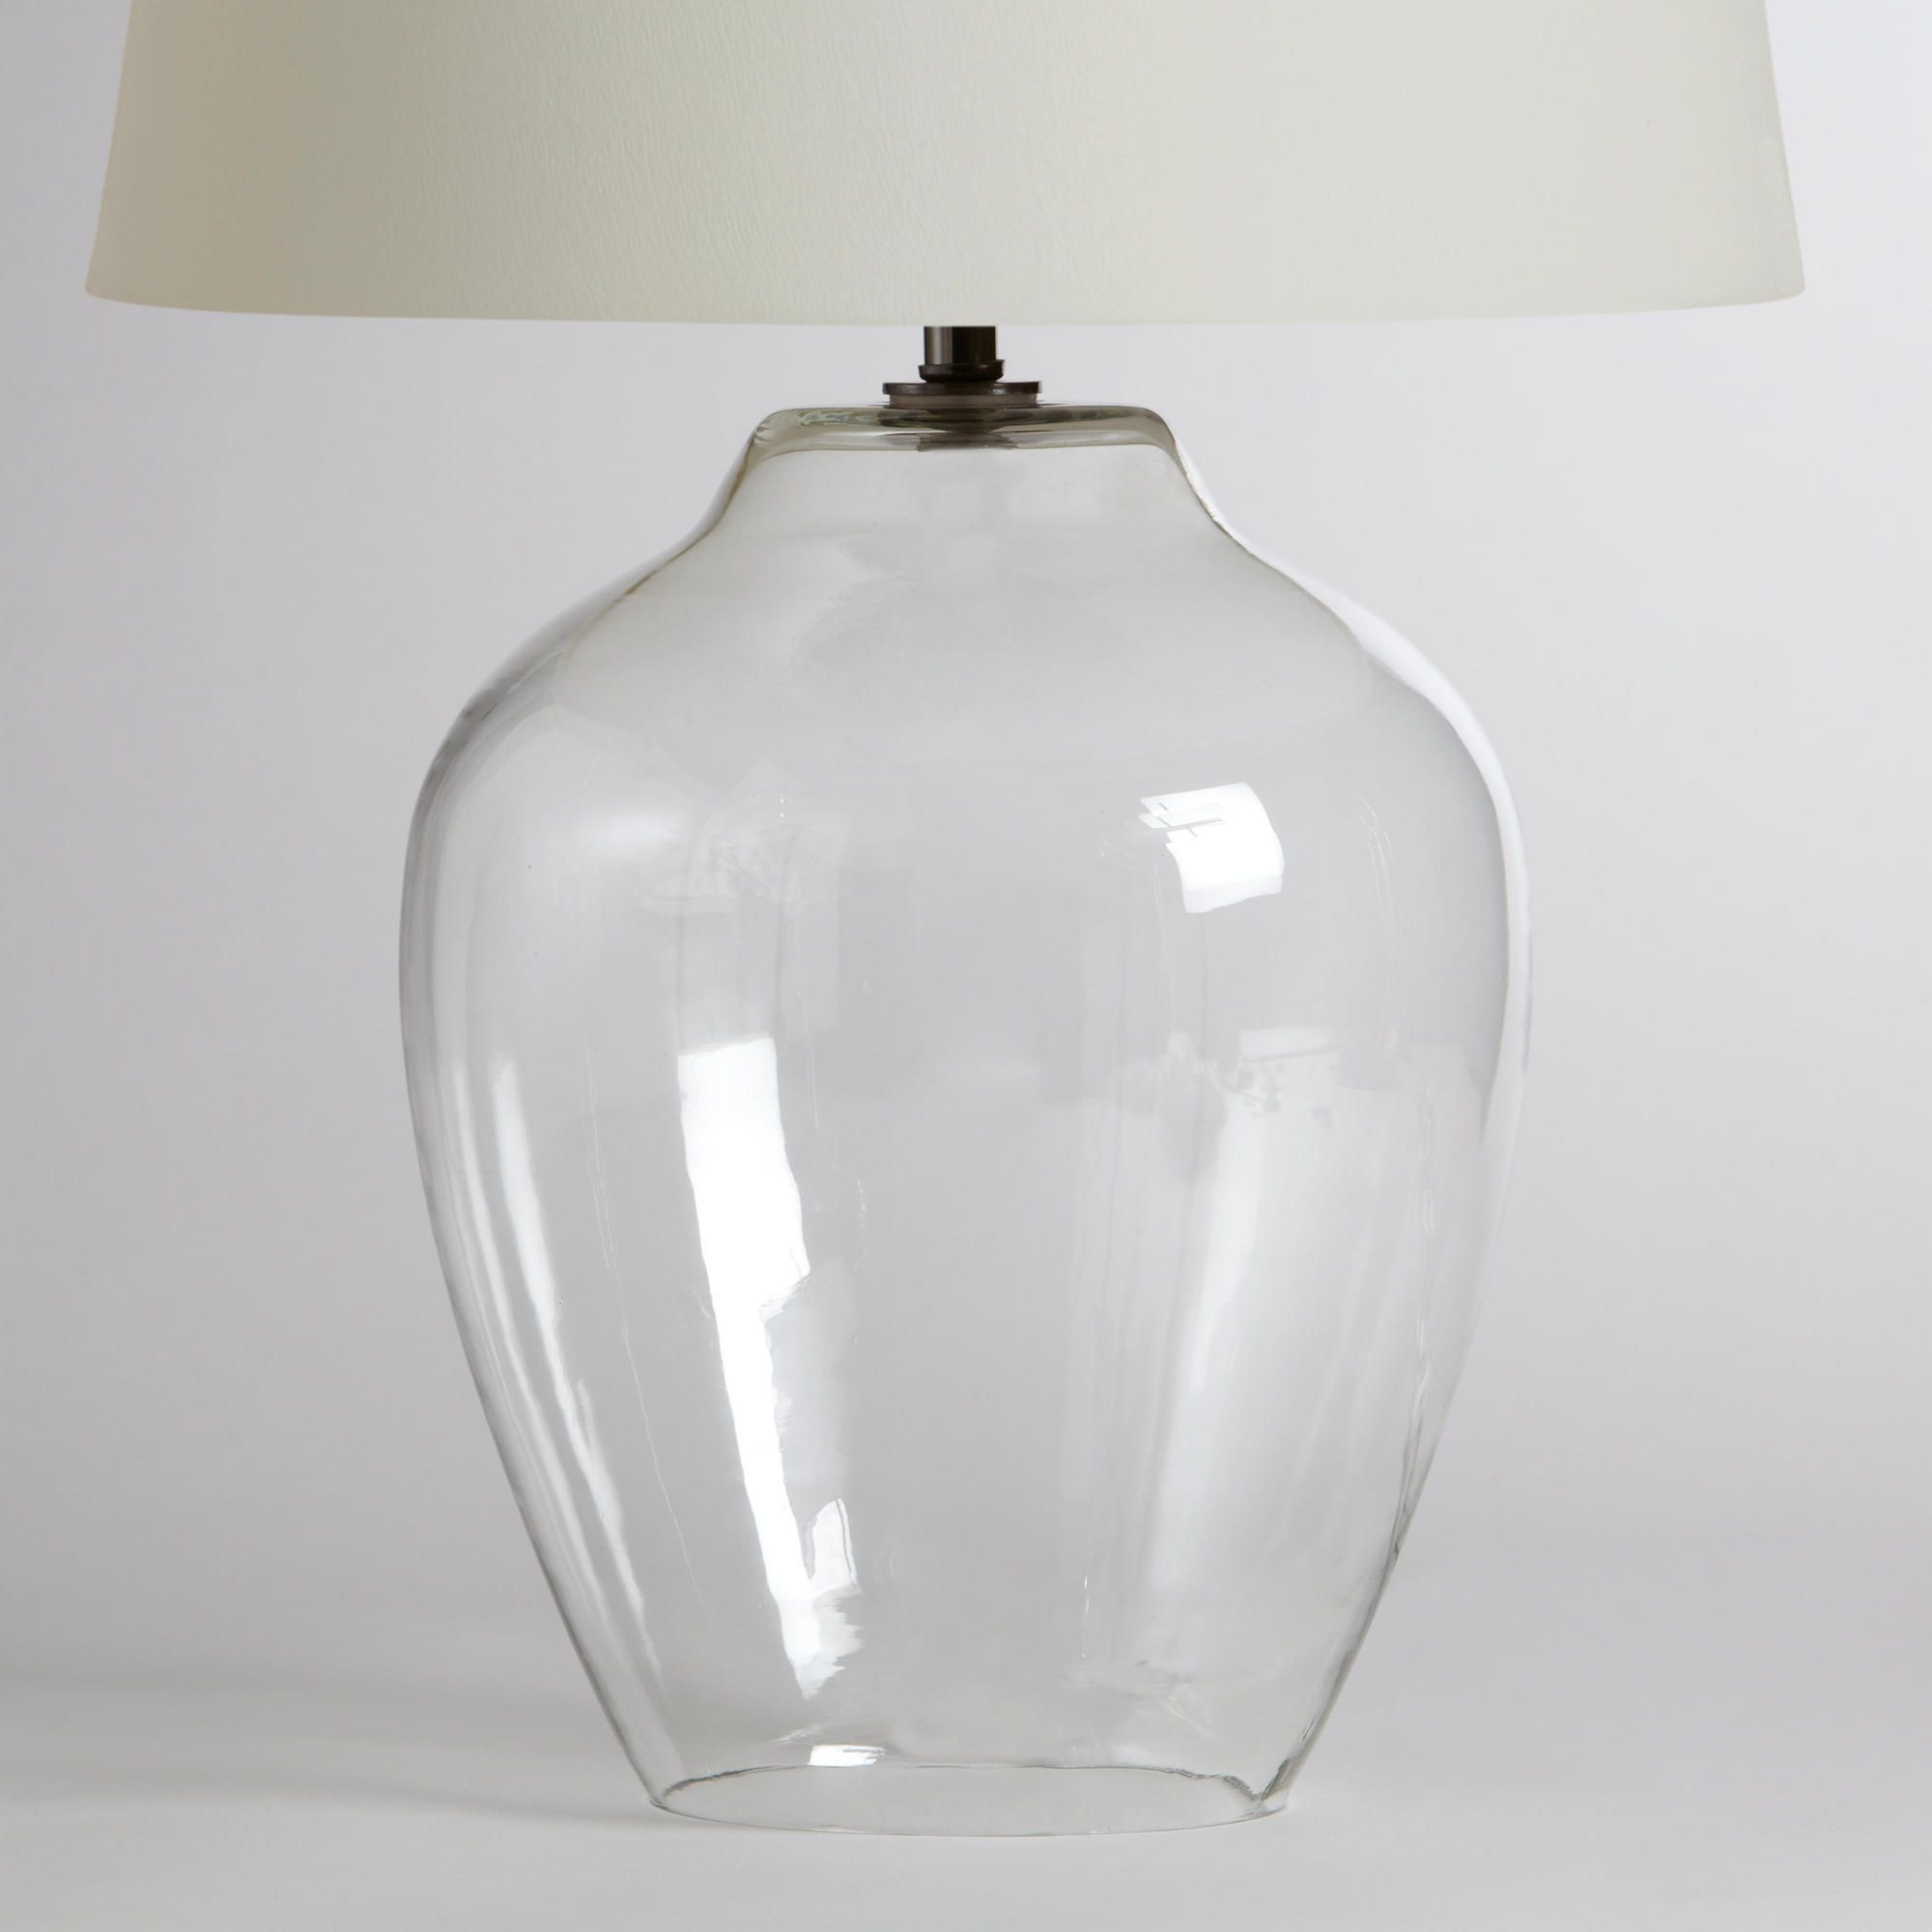 Glass fillable lamp base google search bb monsisvais the shapely silhouette of our clear glass table lamp base catches and reflects the light in any room geotapseo Image collections